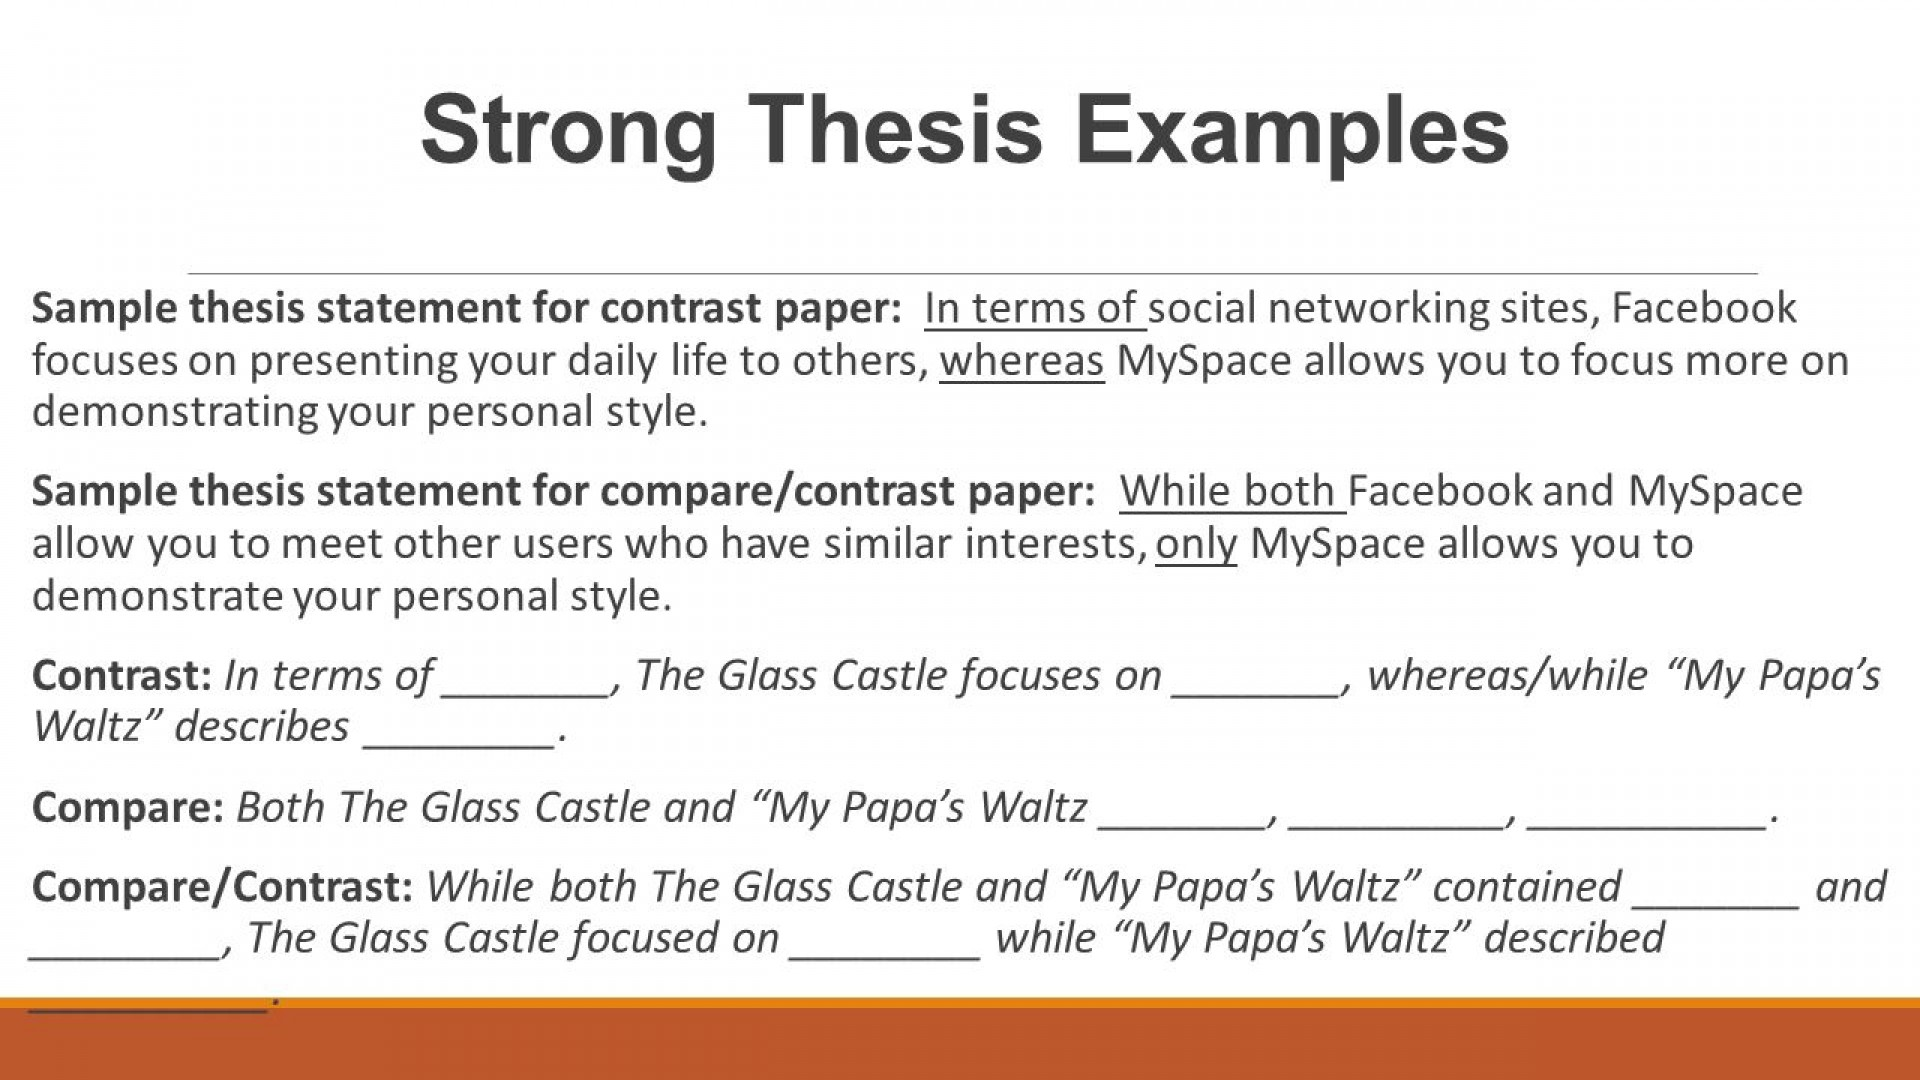 011 Essay Example Compare And Contrast Sample Paper Comparecontrast Thesis Statement For Argumentative On Social Media Sl Unusual Persuasive Abortion Gun Control 1920